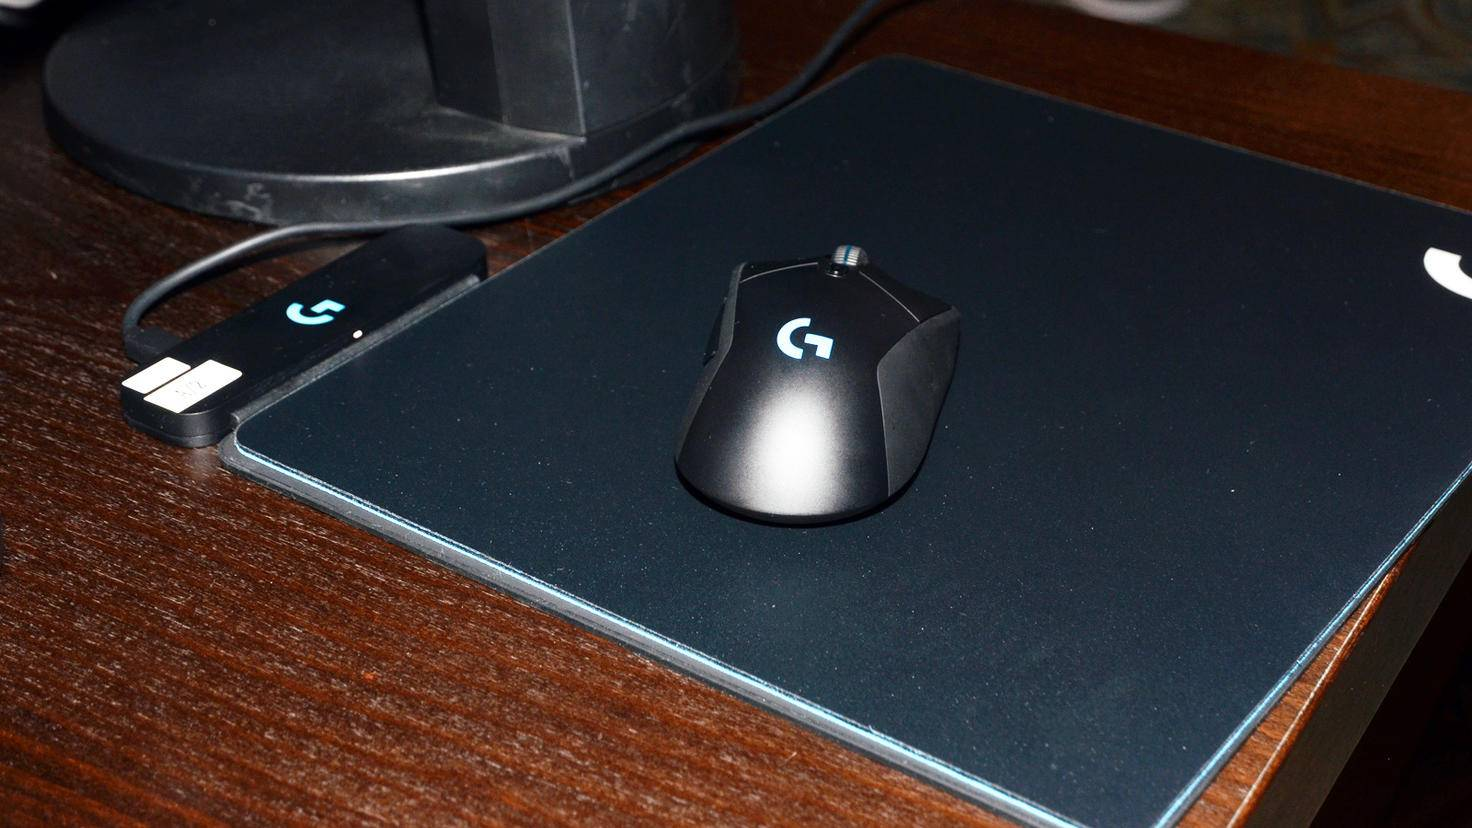 Logitech G Powerplay Mauspad